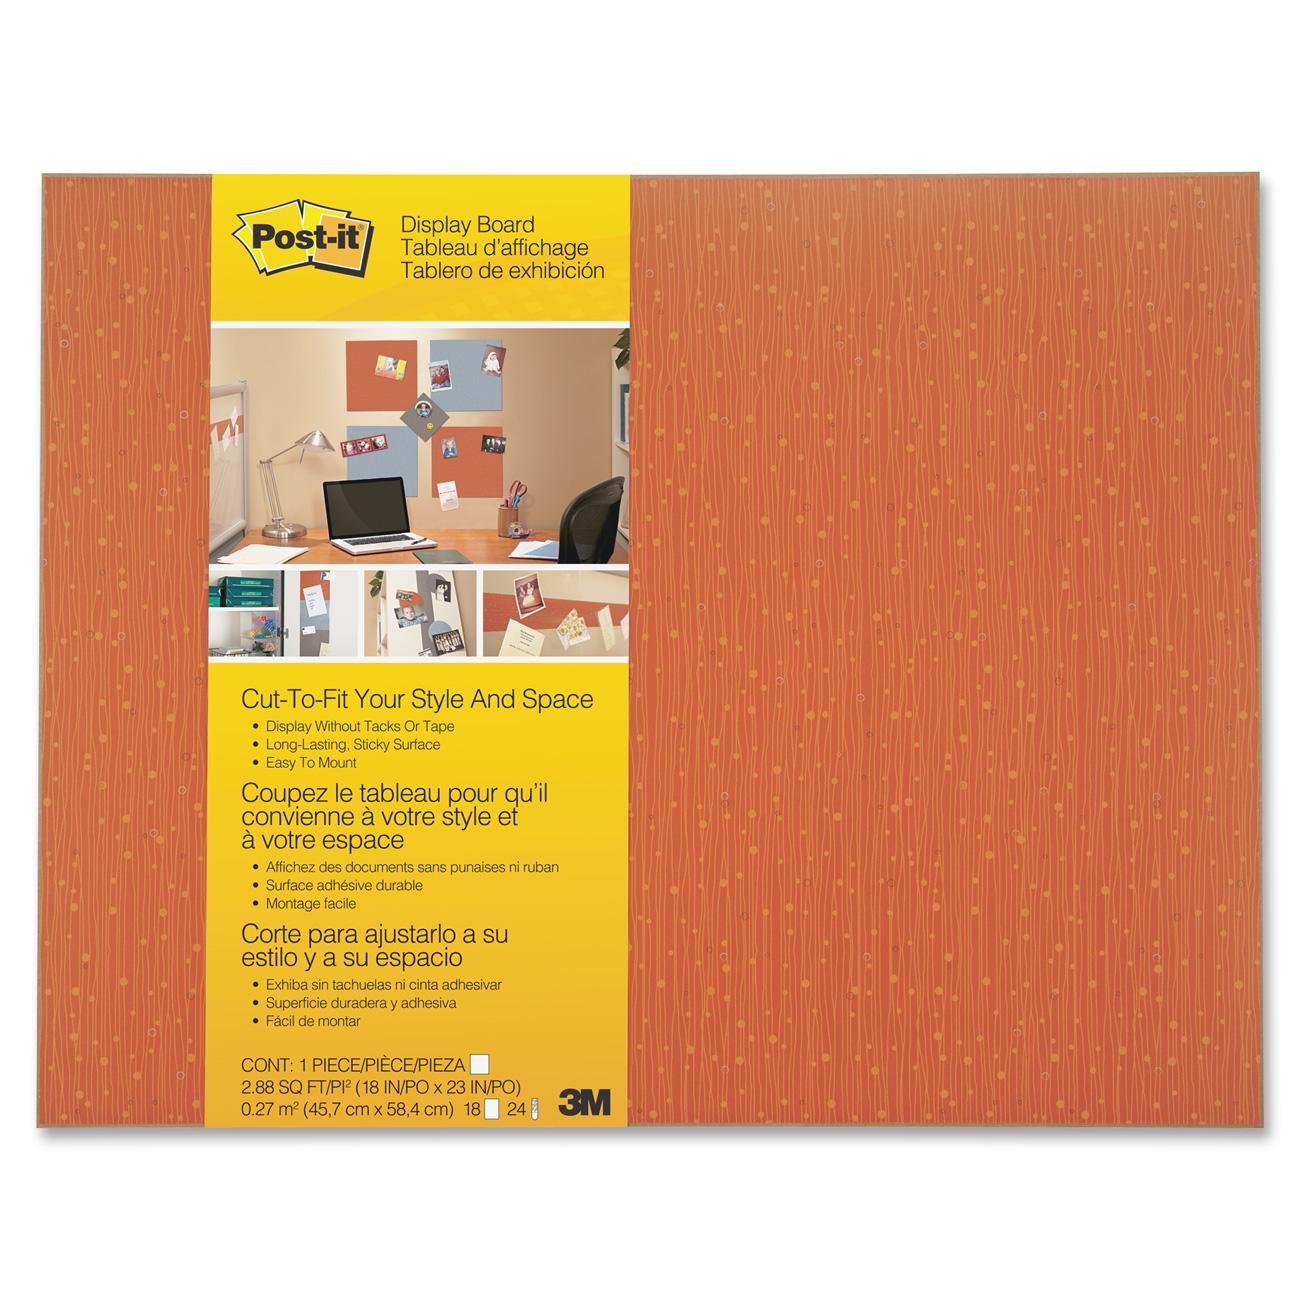 Post-it Cut-to-Fit Display Boards, 1 Each (Quantity)